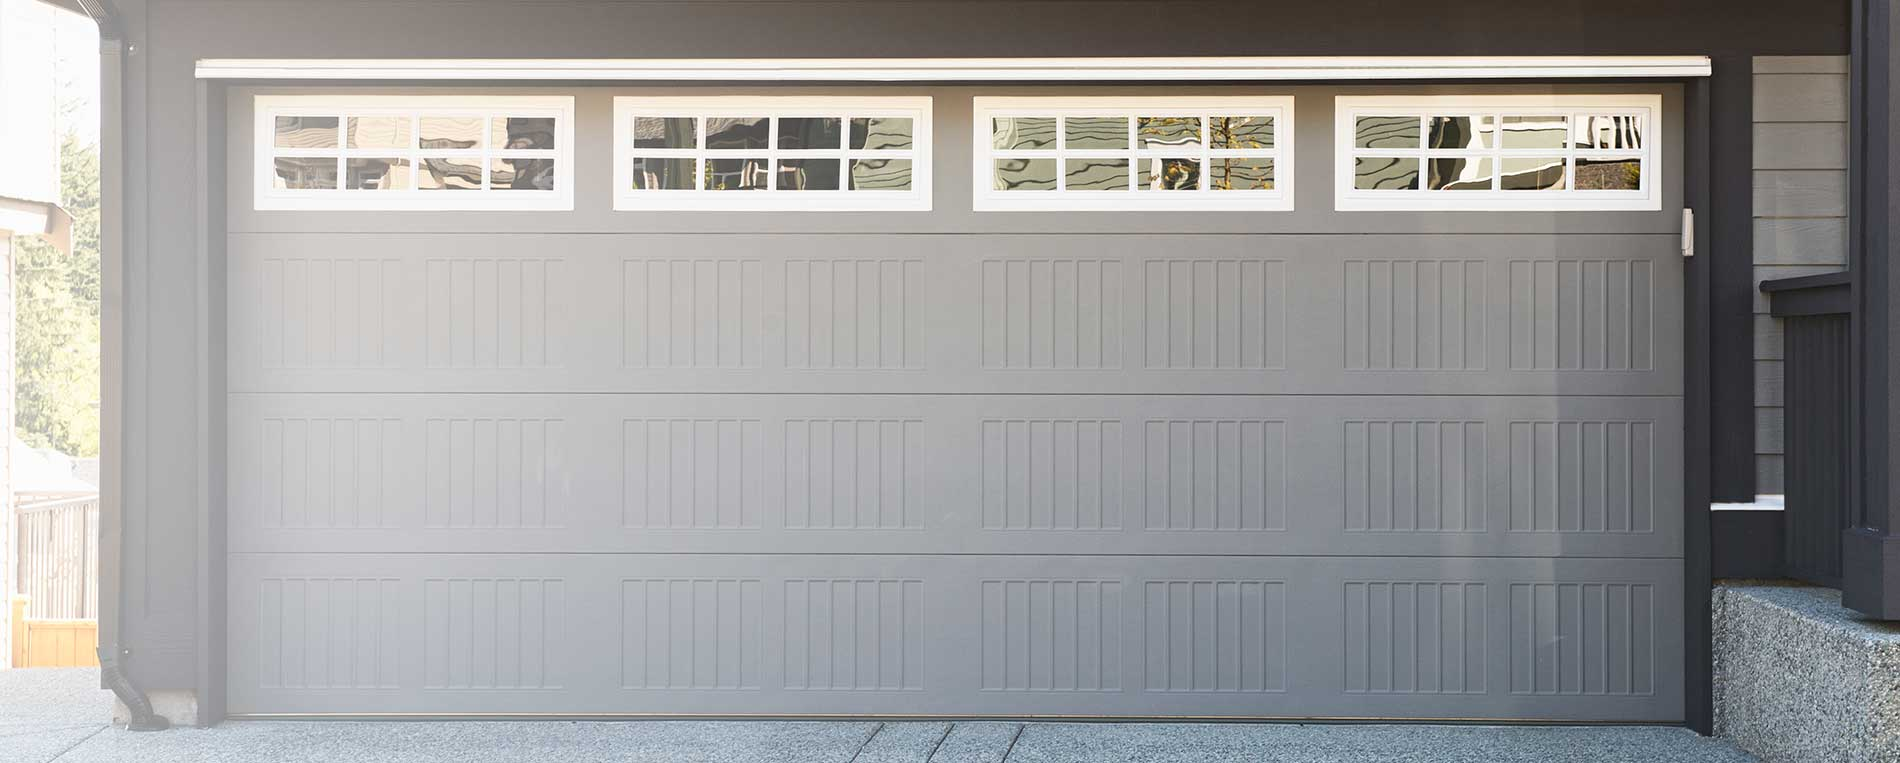 Garage Door Repair Fort Mill, SC